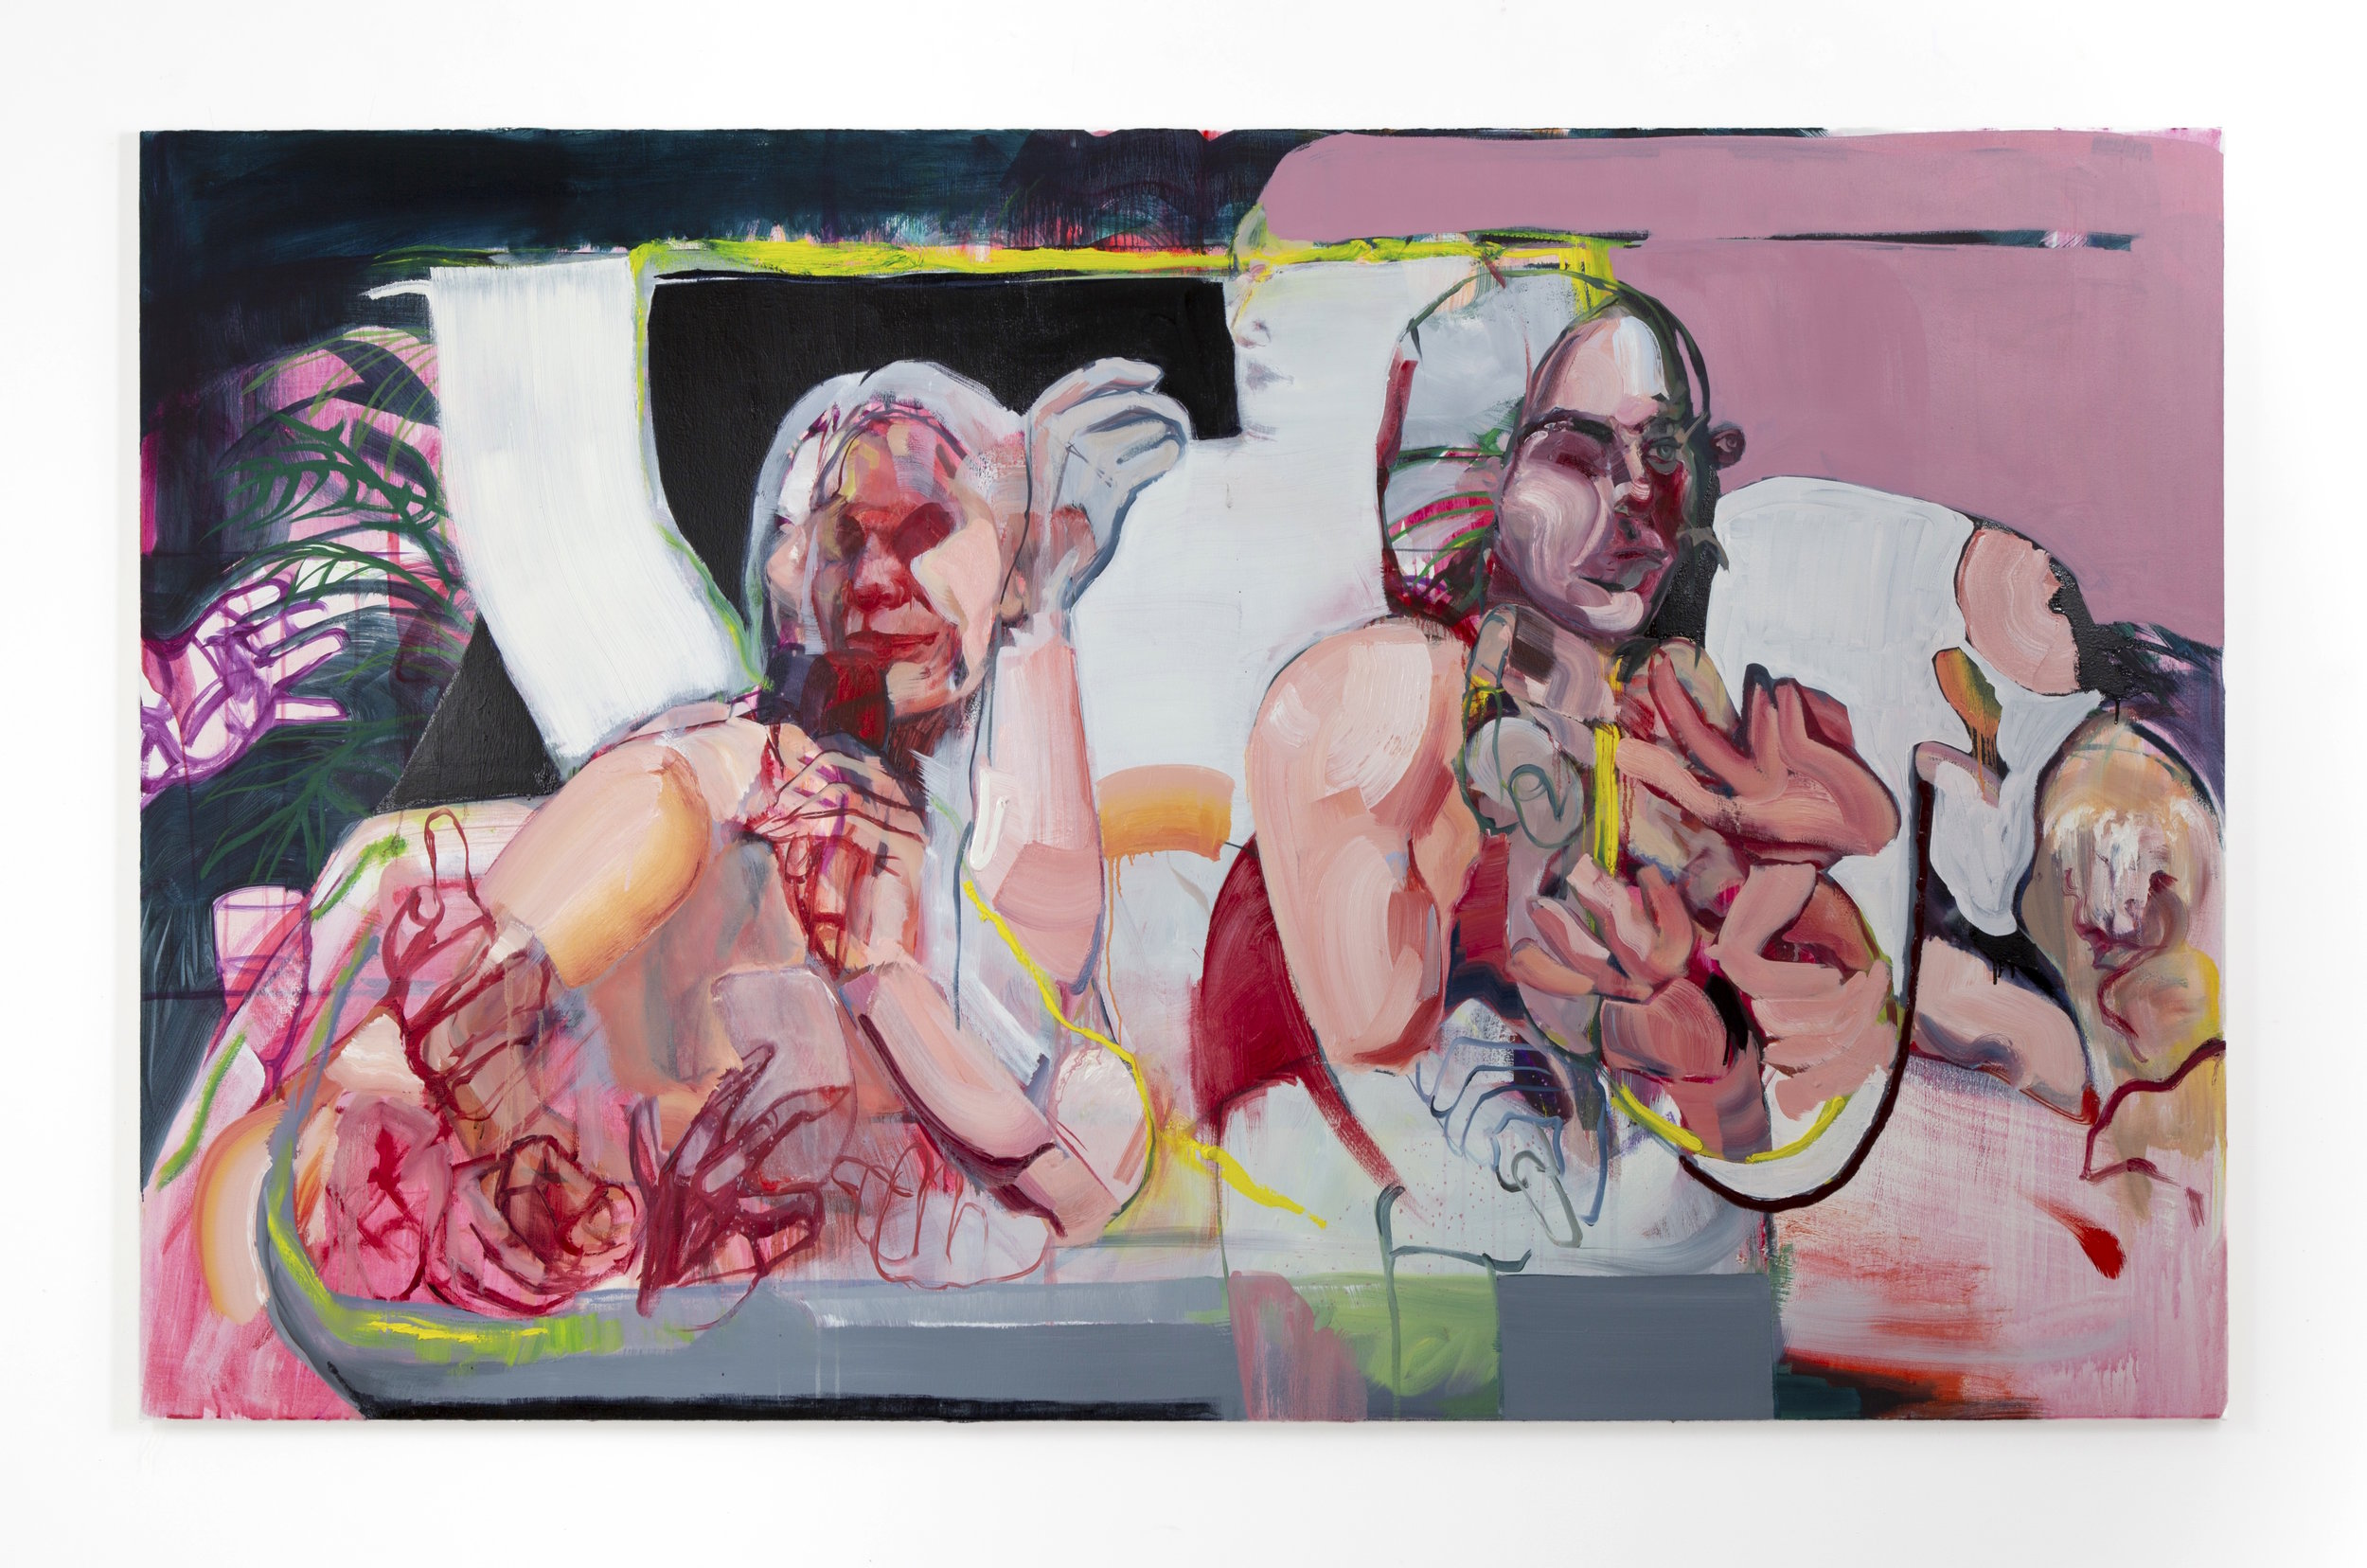 LA Hot Tub,  oil and acrylic on canvas, 84'' x 52'', 2019